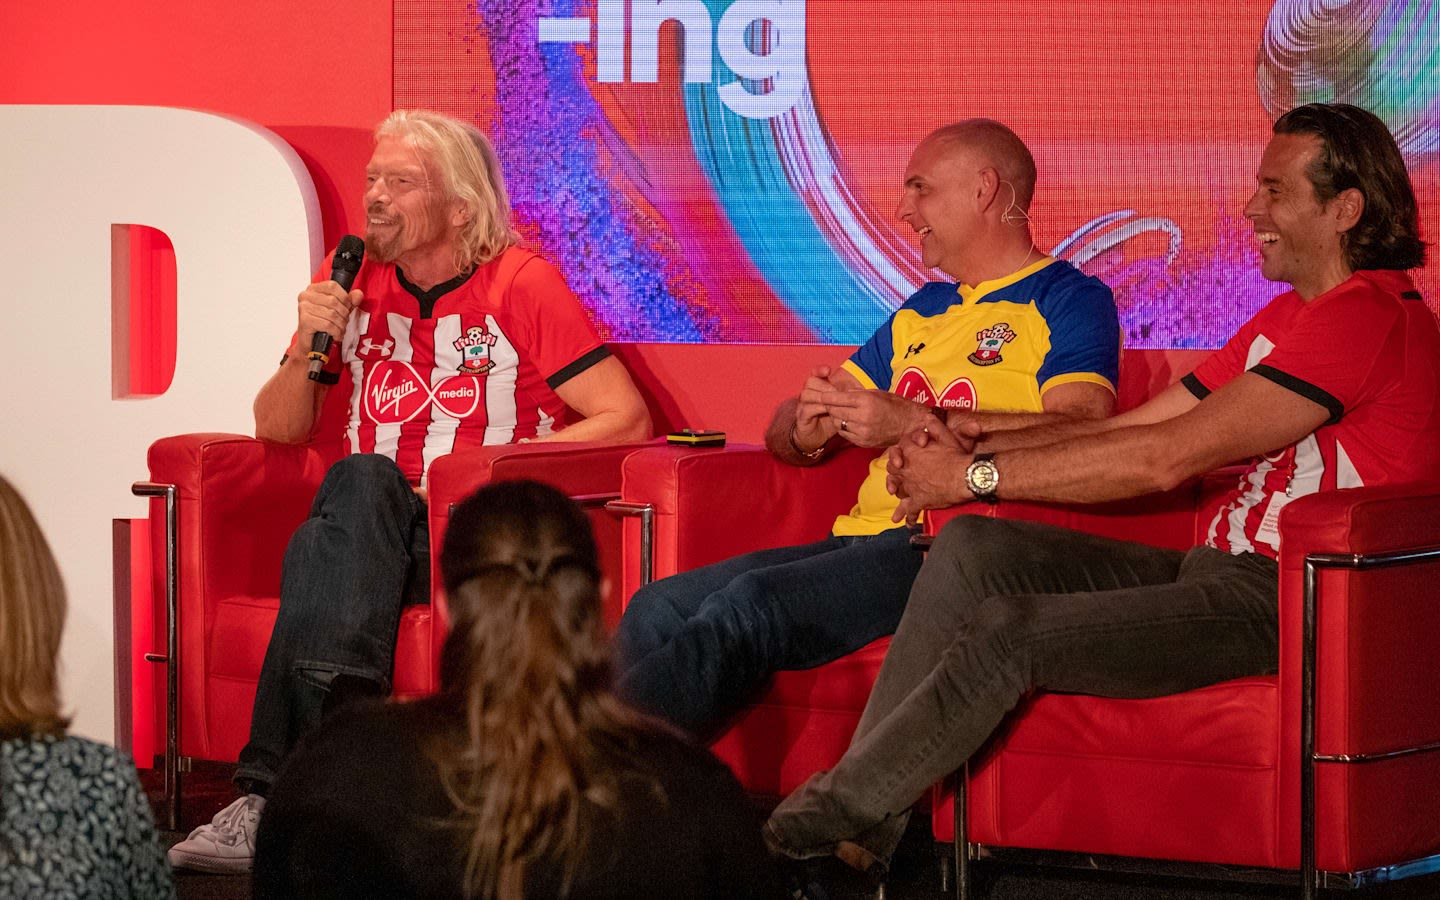 Richard Branson speaking on a Virgin Media panel with the Southampton football team